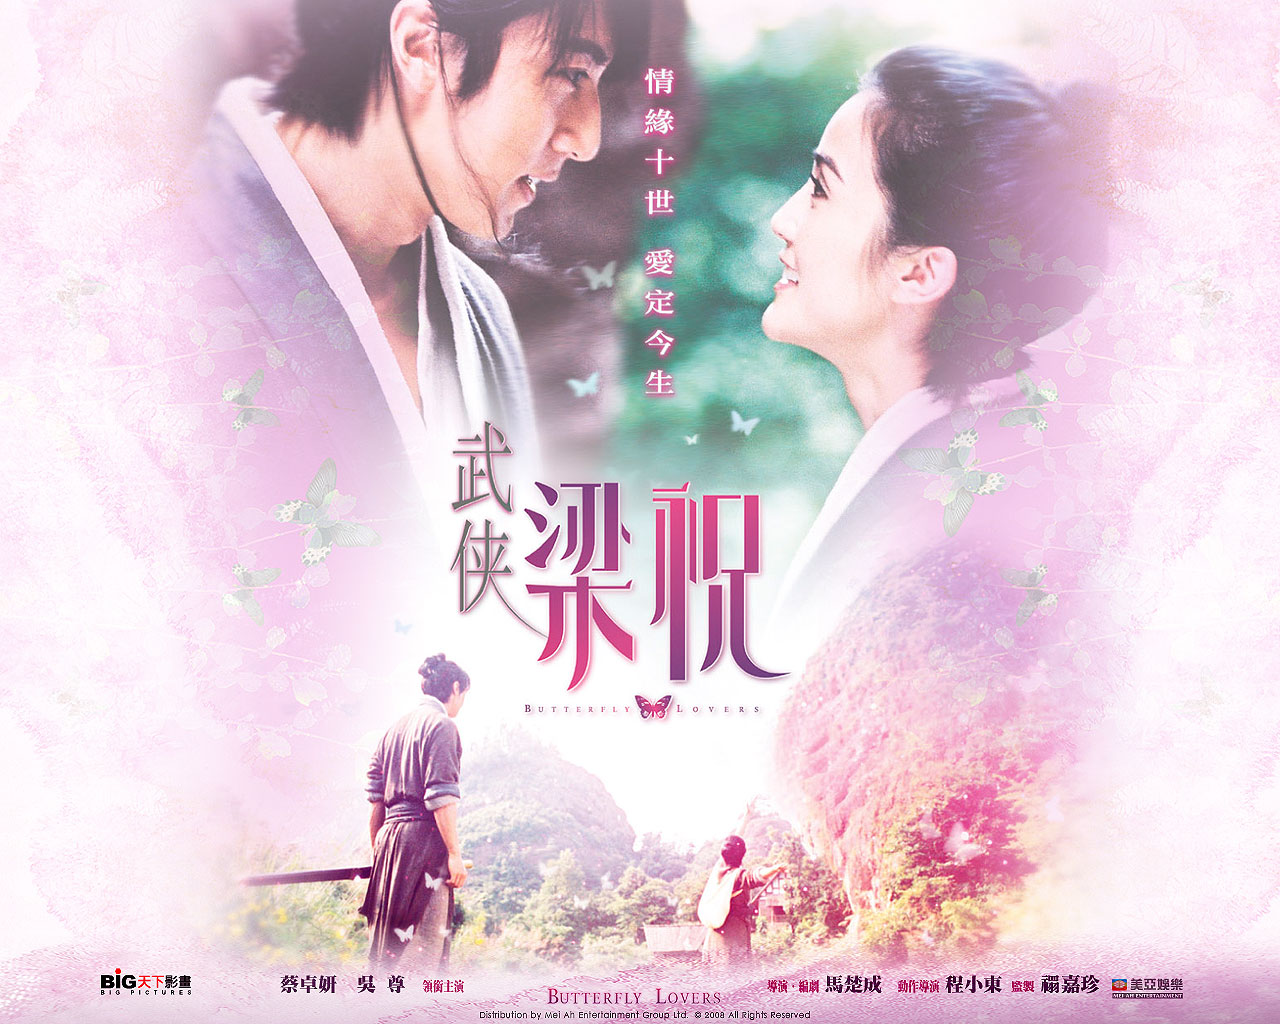 Music Lovers Wallpaper Android Apps On Google Play - Butterfly Lovers Chinese Movie - HD Wallpaper